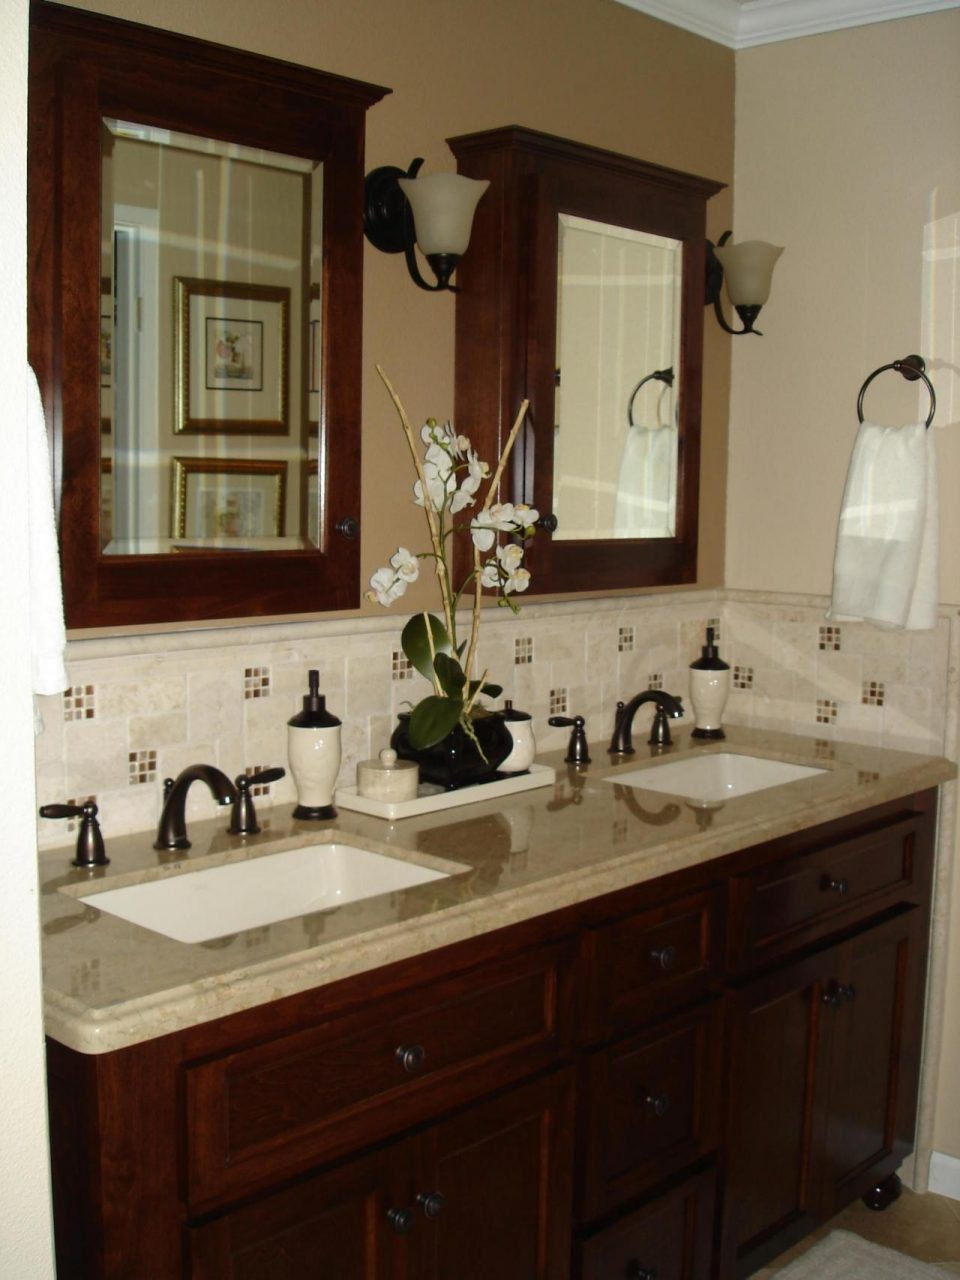 Lovely Sink Backsplash Ideas 10 Bathroom Pedestal With Tile